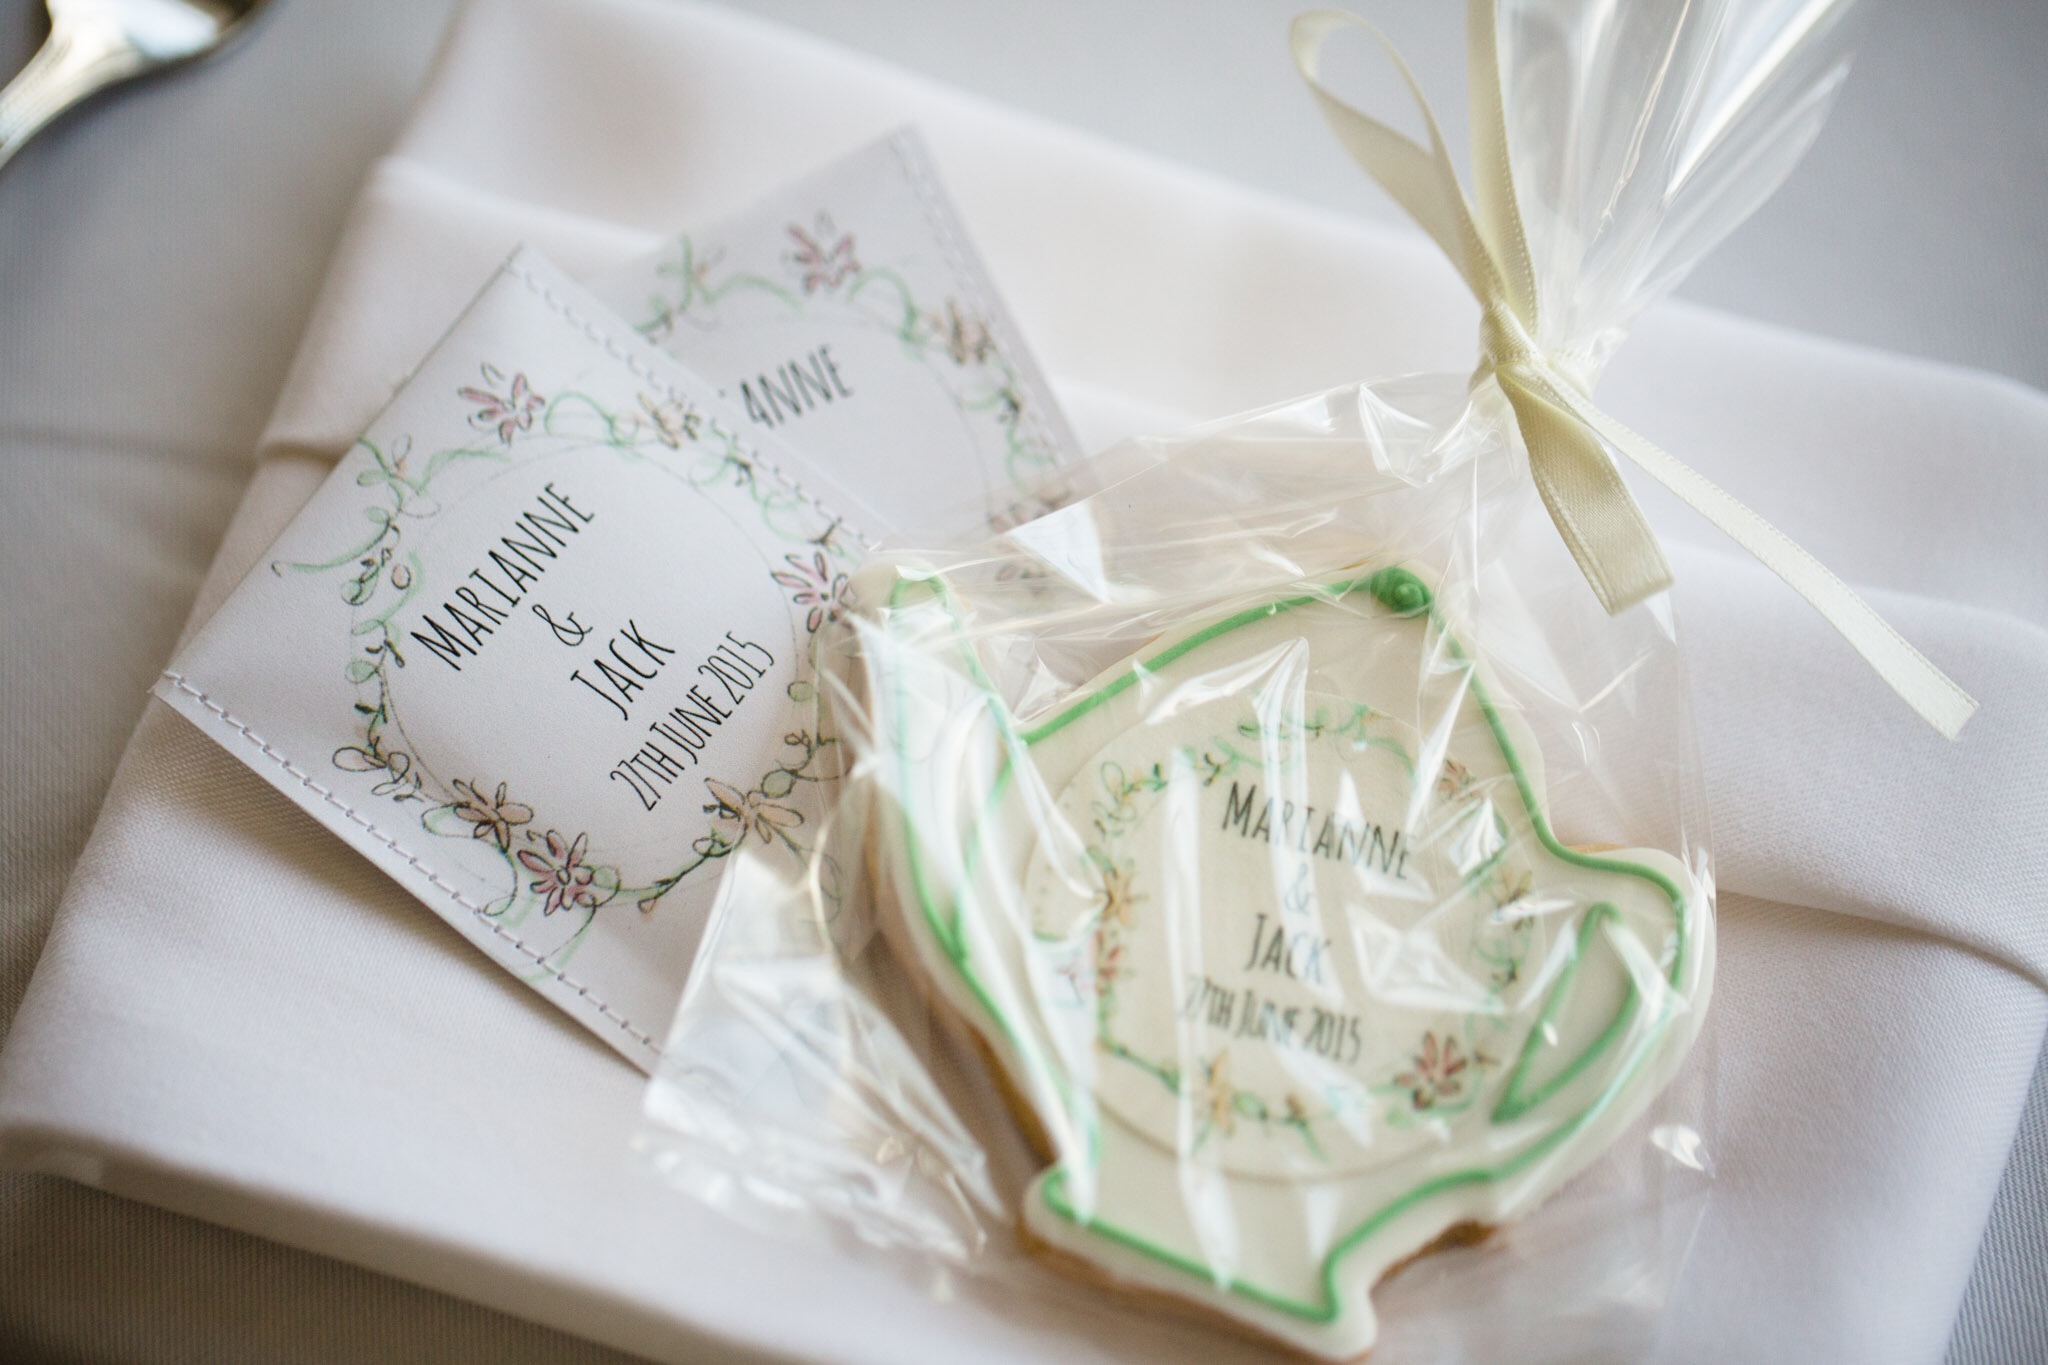 Marianne and Jack - Nonsuch Mansion - Favours